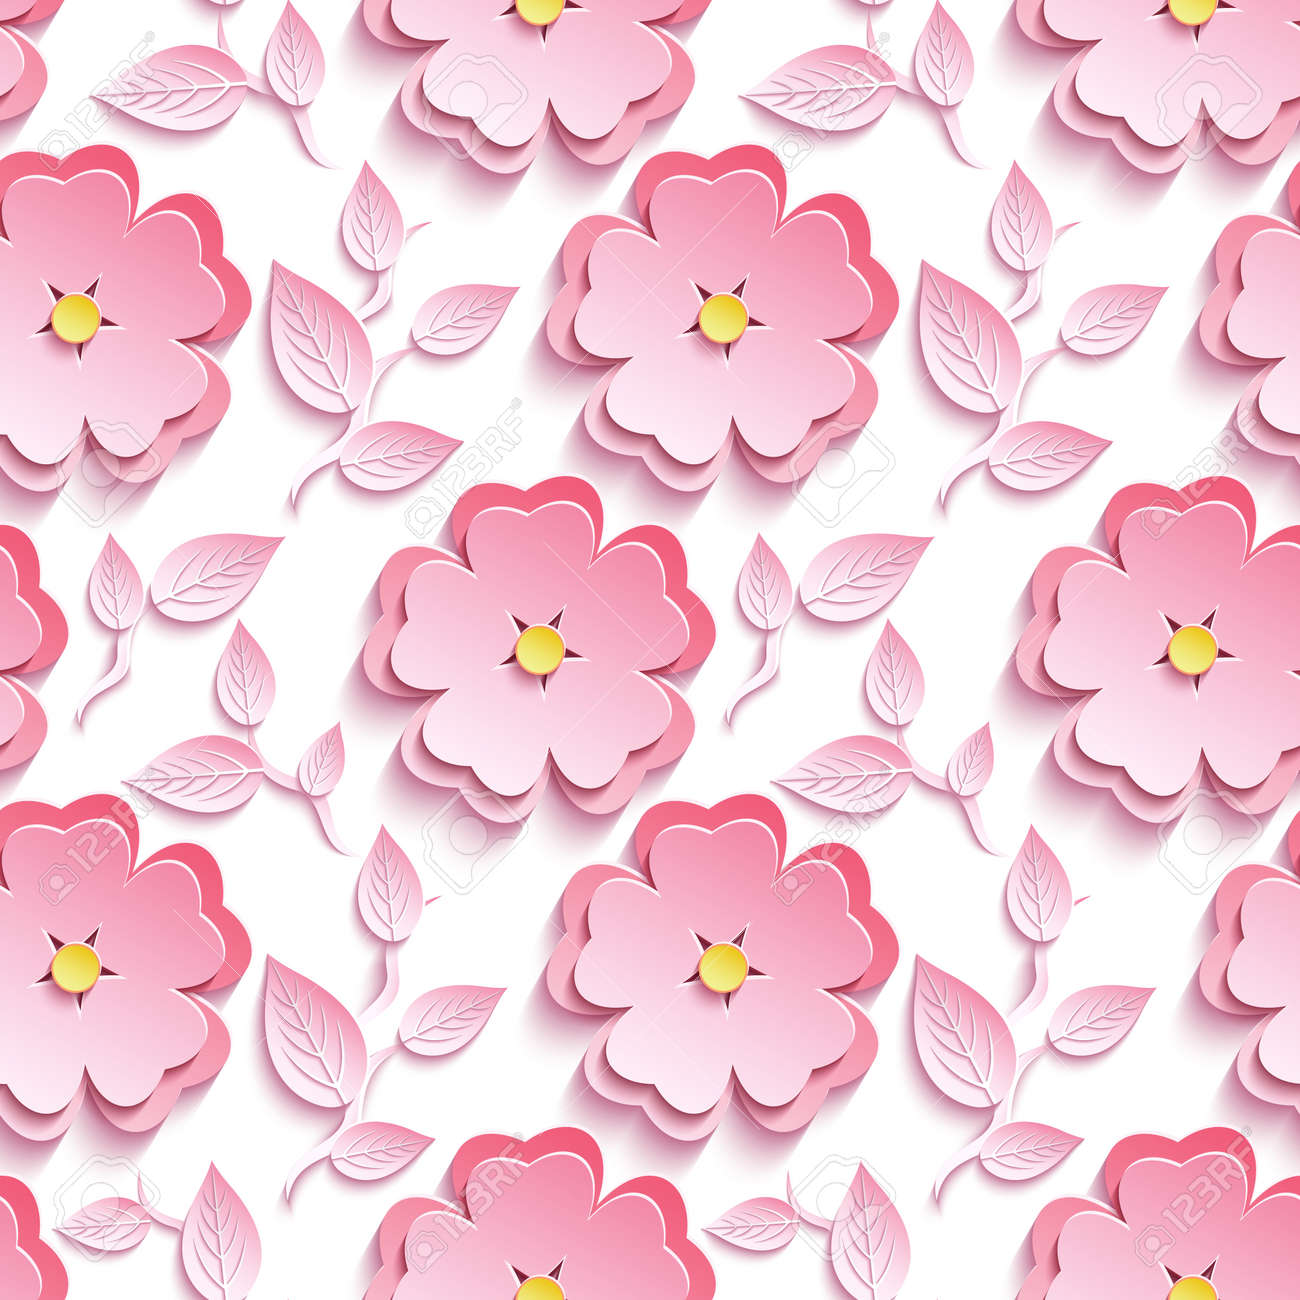 Background seamless pattern with pink 3d flower sakura cutting background seamless pattern with pink 3d flower sakura cutting paper japanese cherry tree branch mightylinksfo